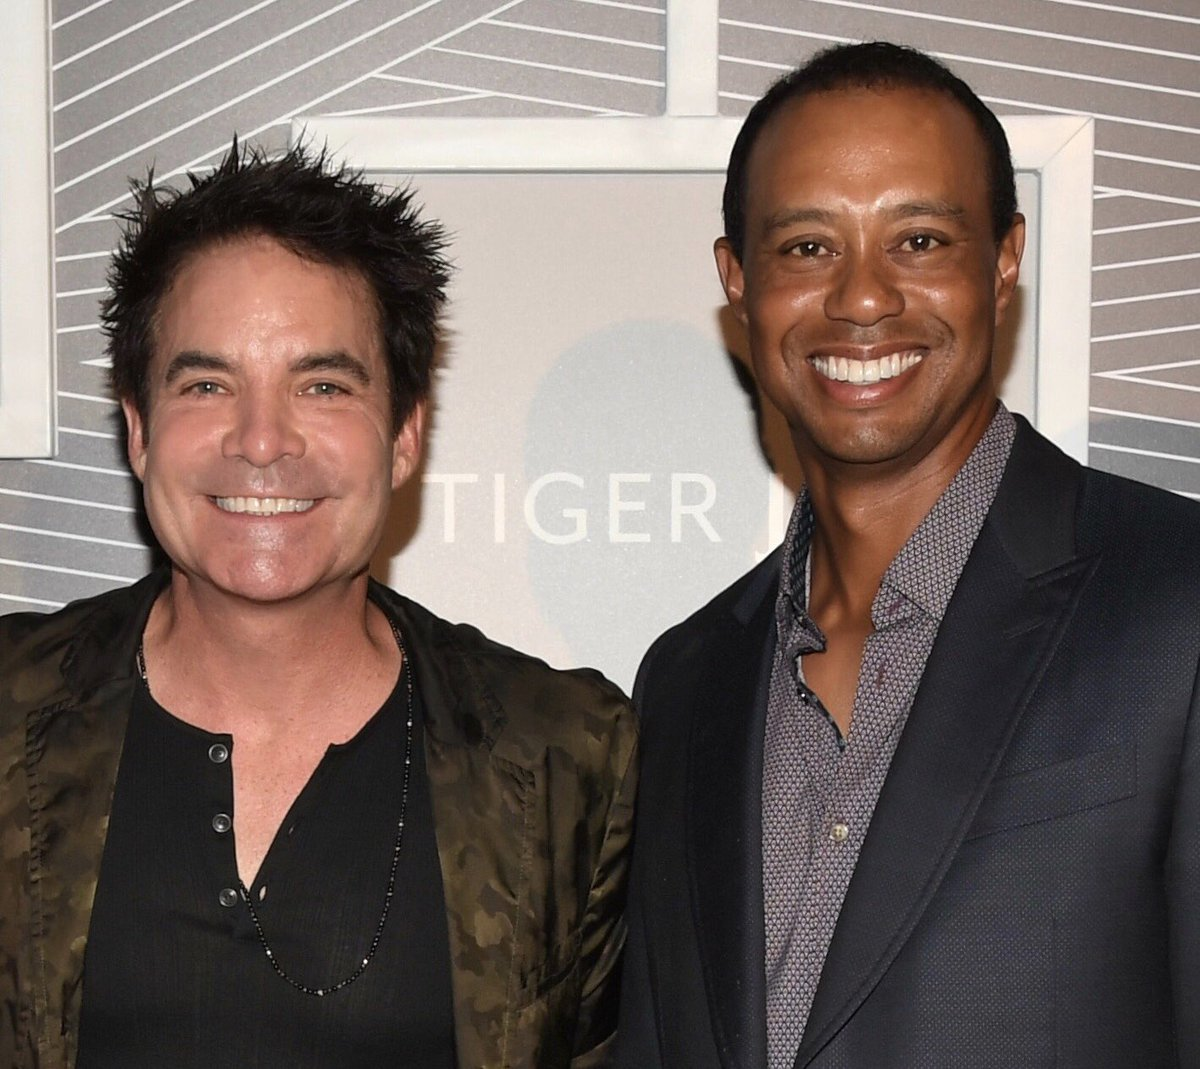 What a great show by @train at #TigerJam. Thank you for supporting @TGRFound